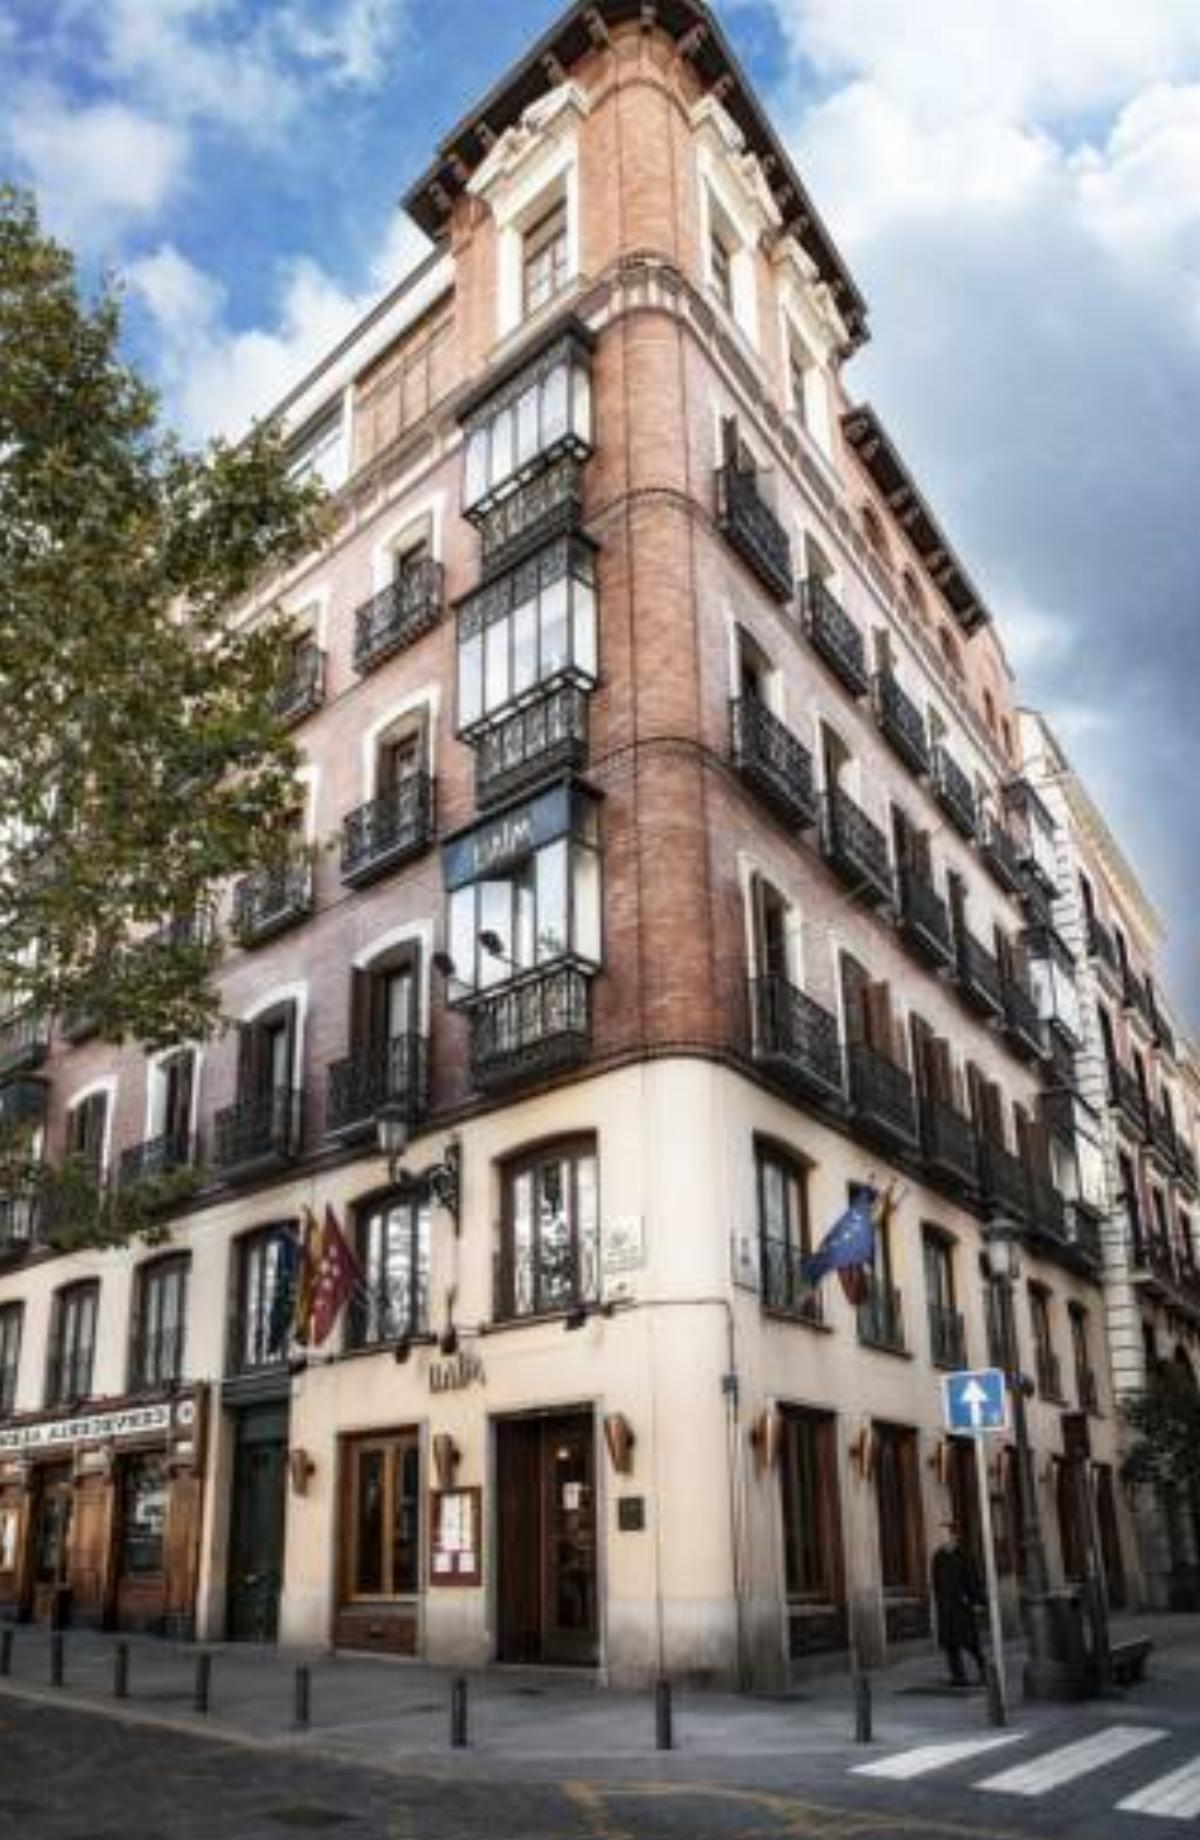 Hotel Miau Hotel Madrid Spain